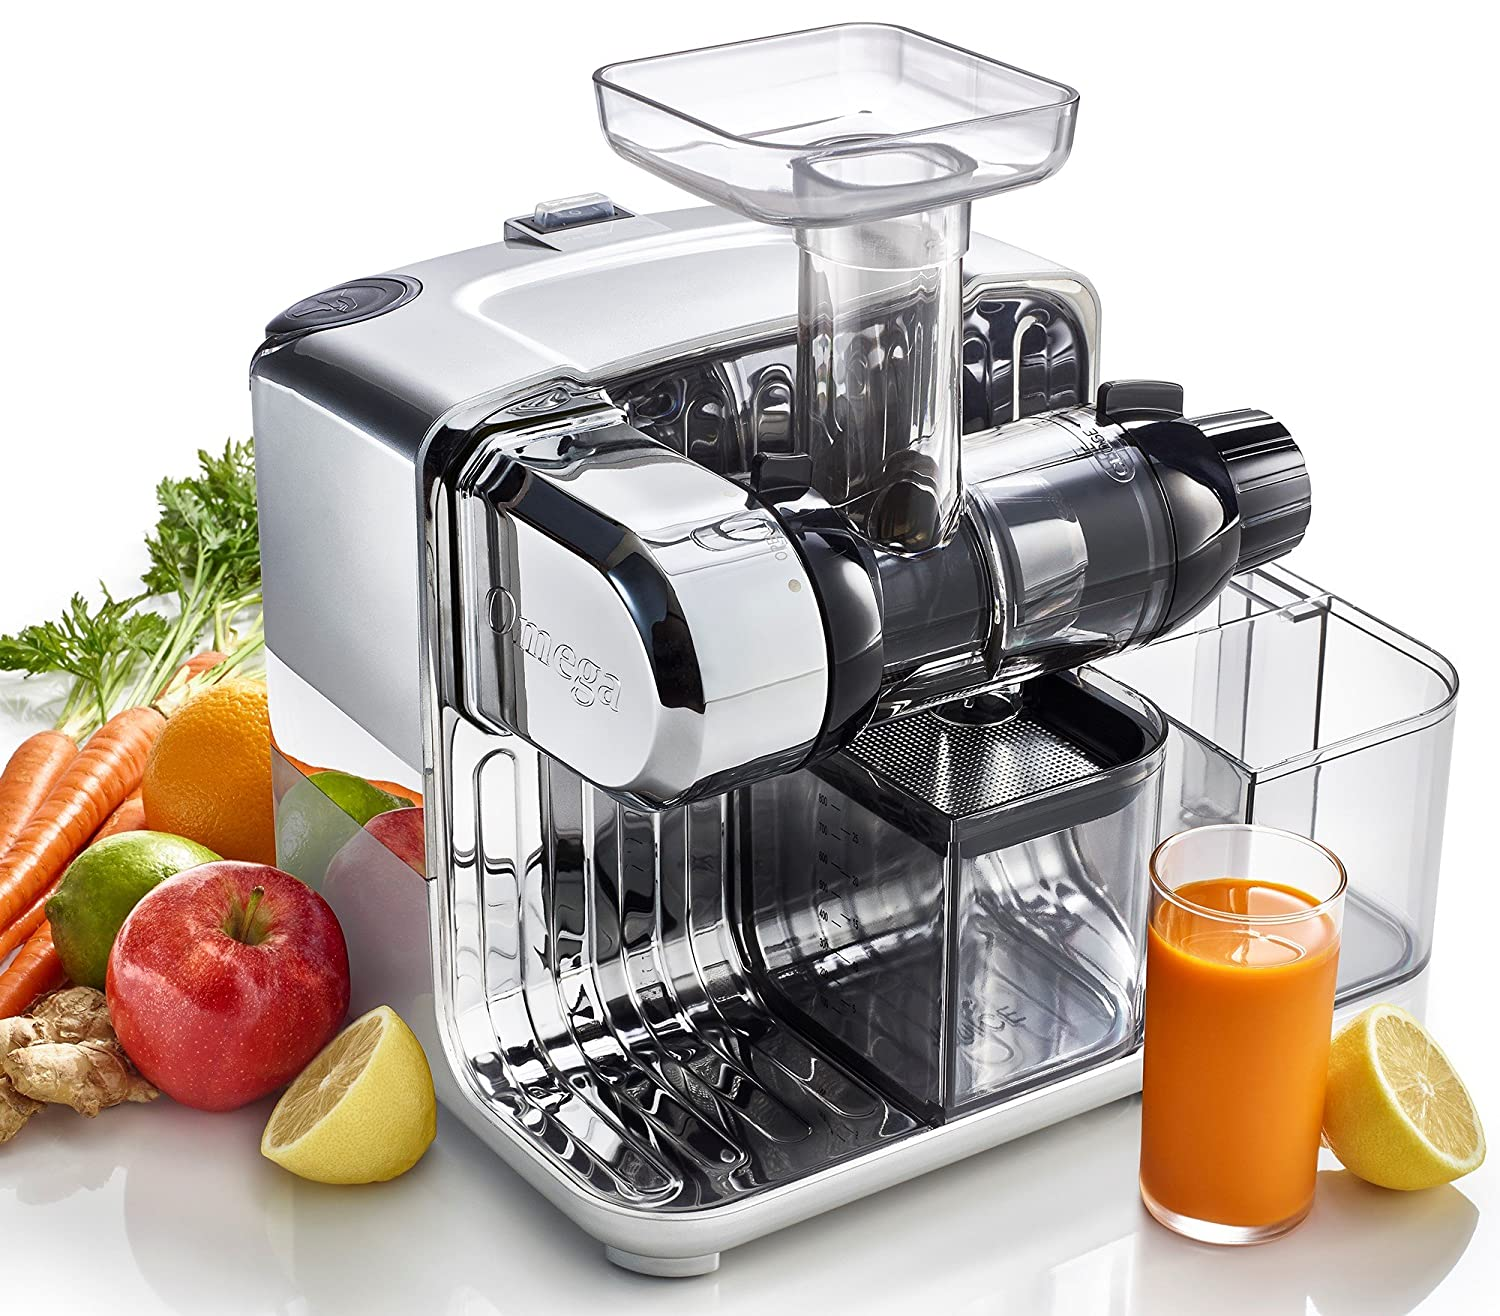 Omega CUBE300S Cube Nutrition Center Juicer Creates Fruit Vegetable and Wheatgrass Juice Slow Masticating Compact Design with Convenient Storage, 200-Watts, Silver